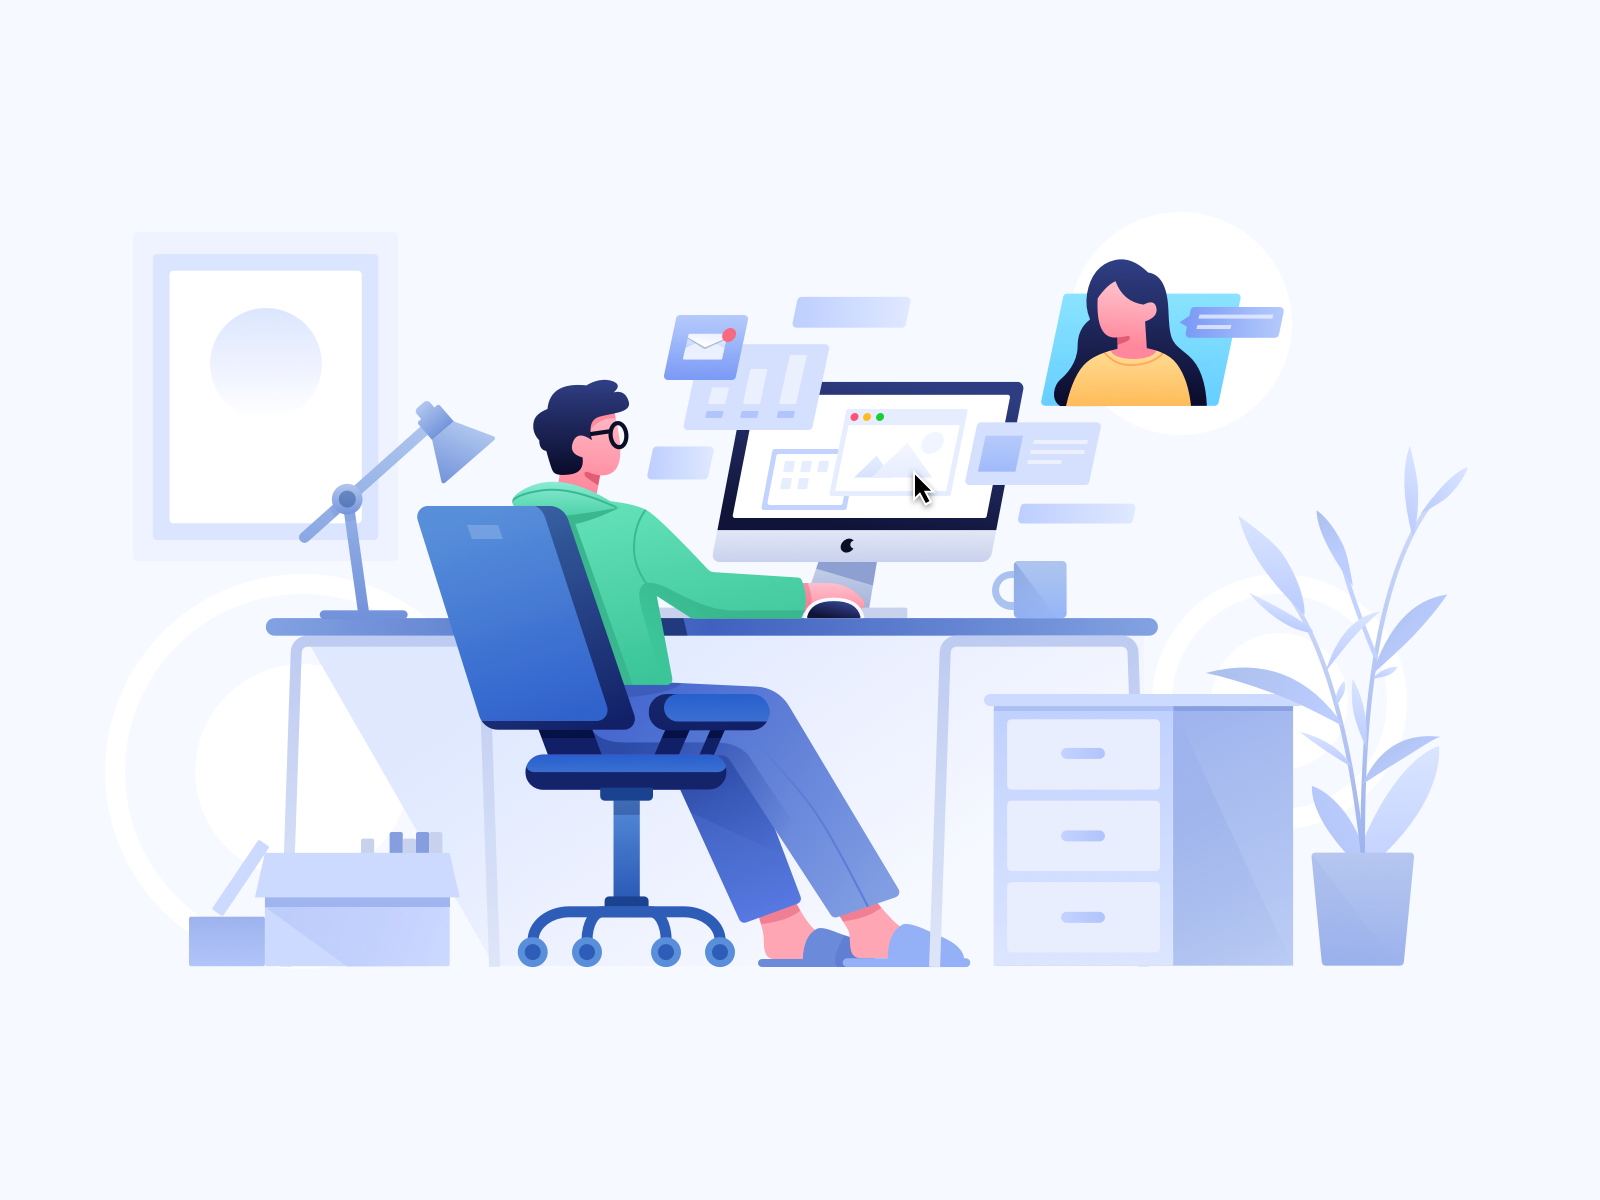 work at home illustration